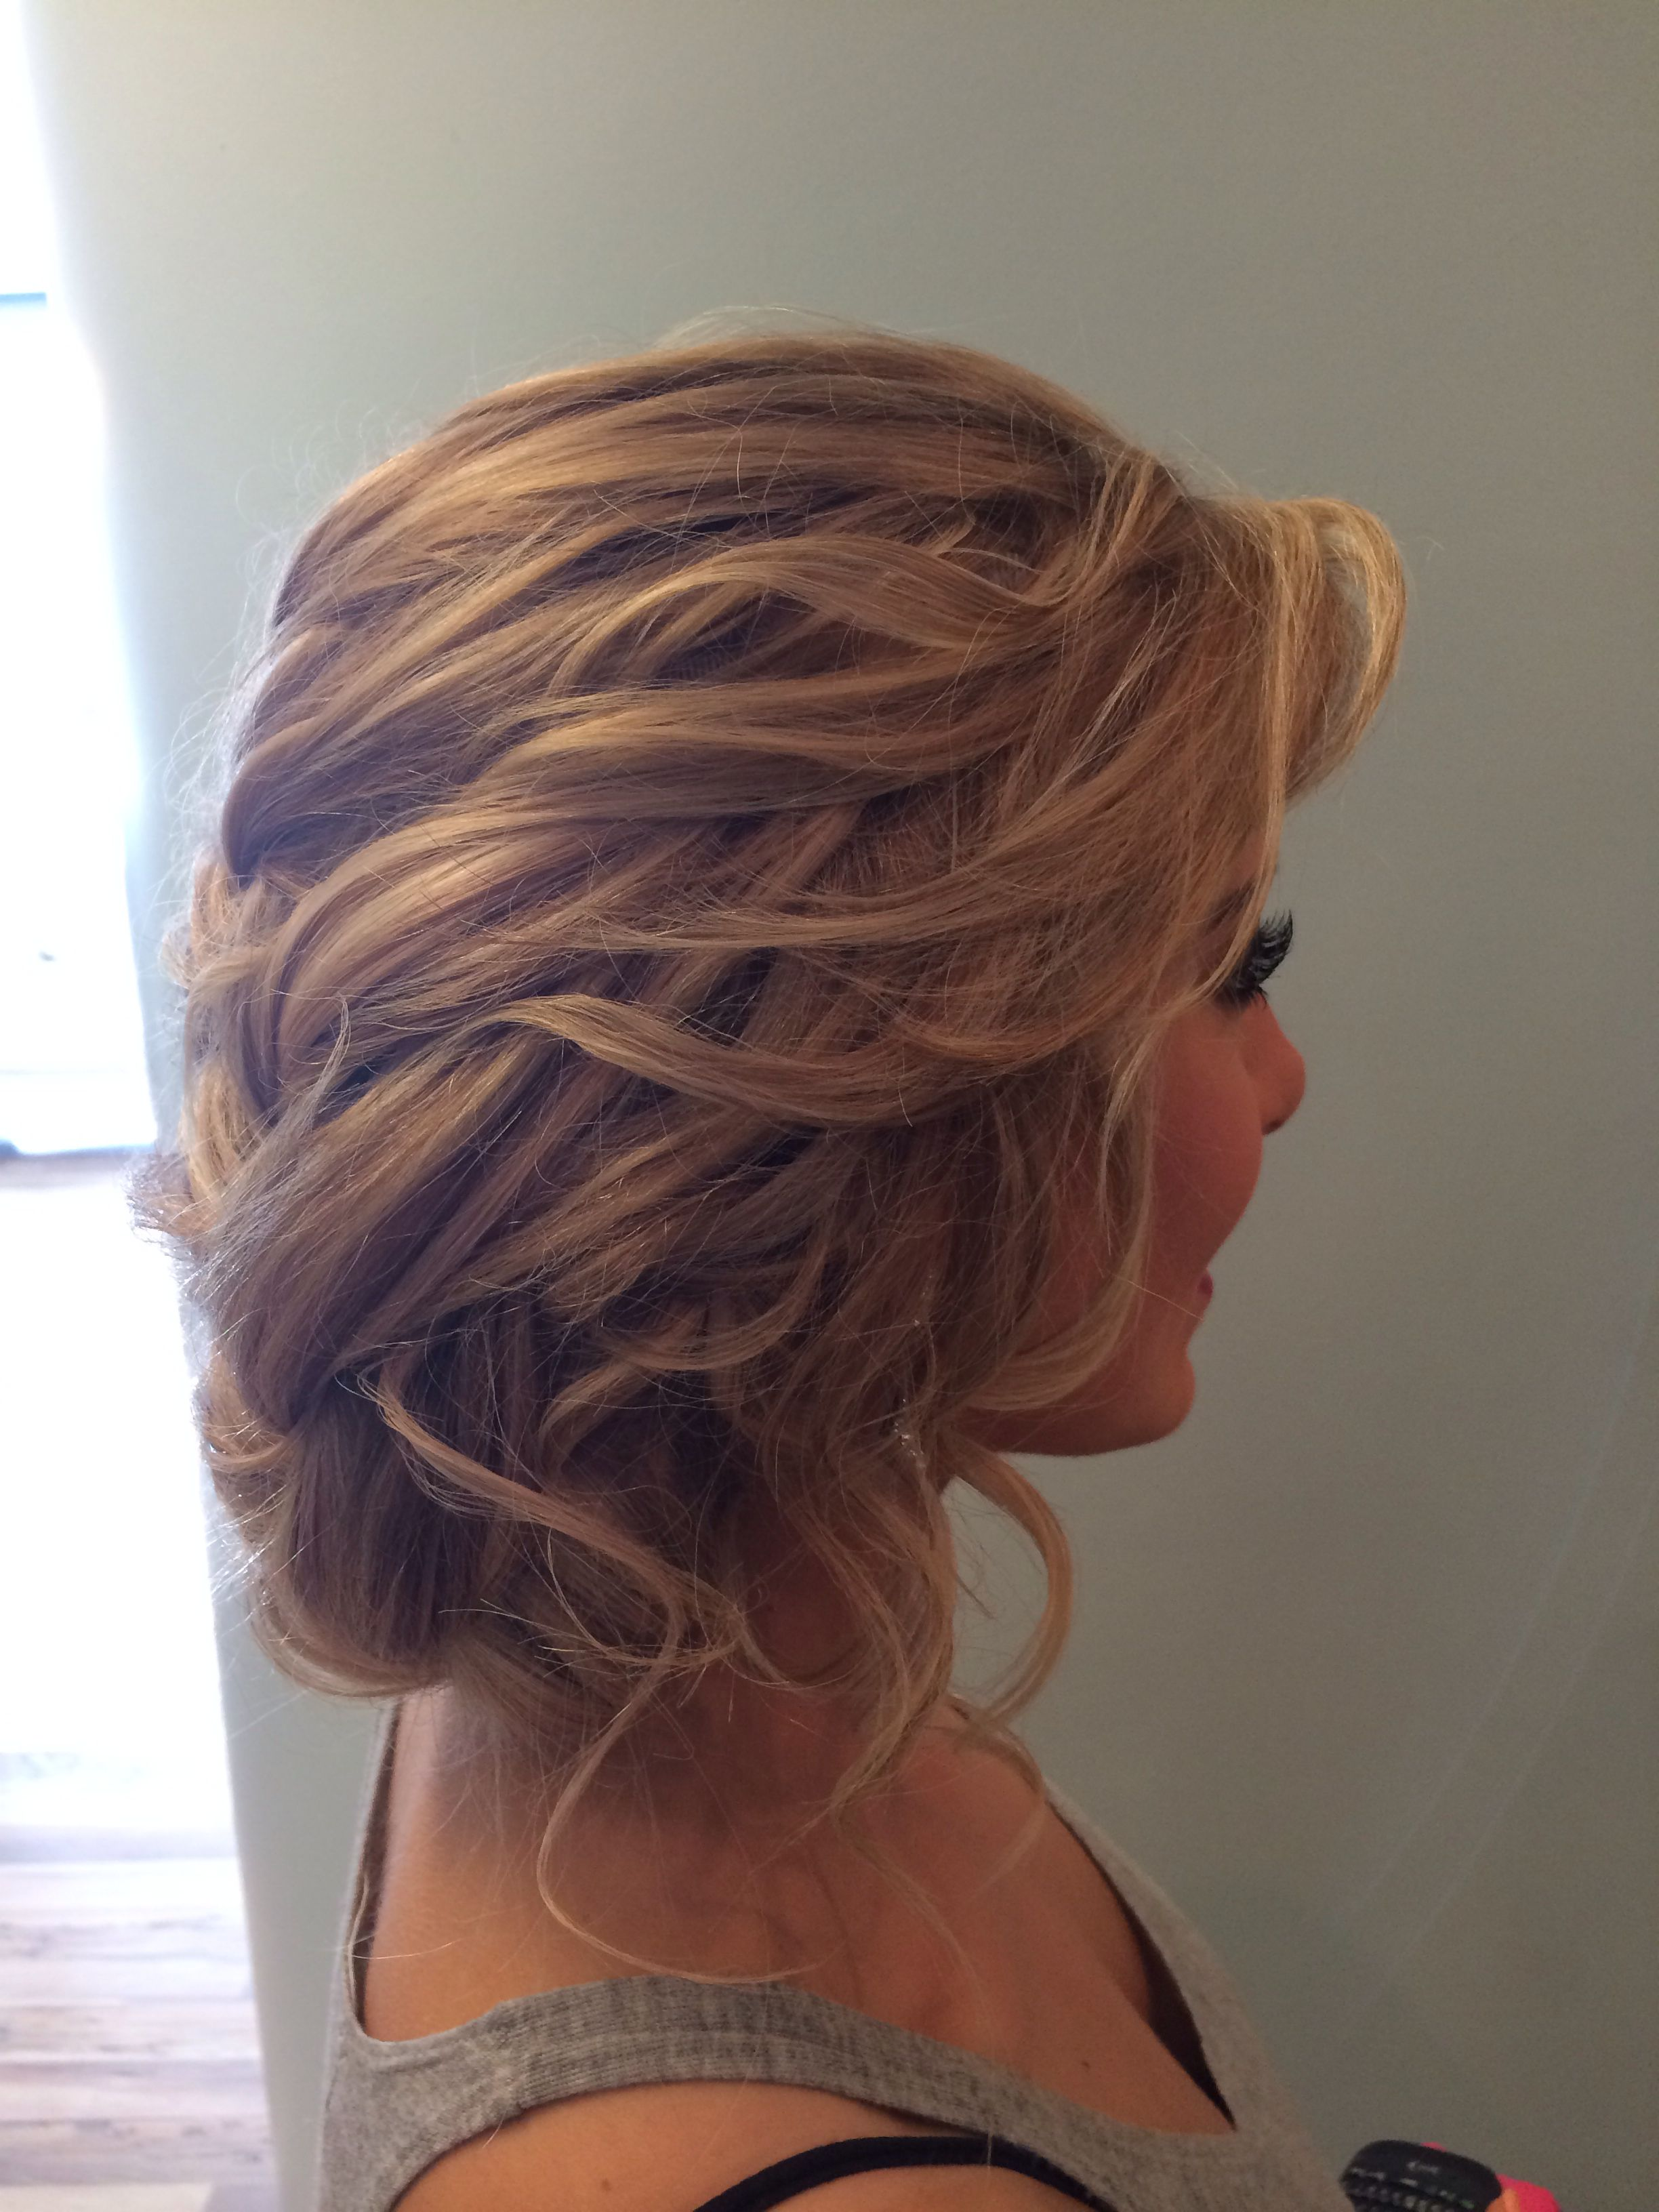 Pin by marisol de la fuente on hair pinterest prom hair updo